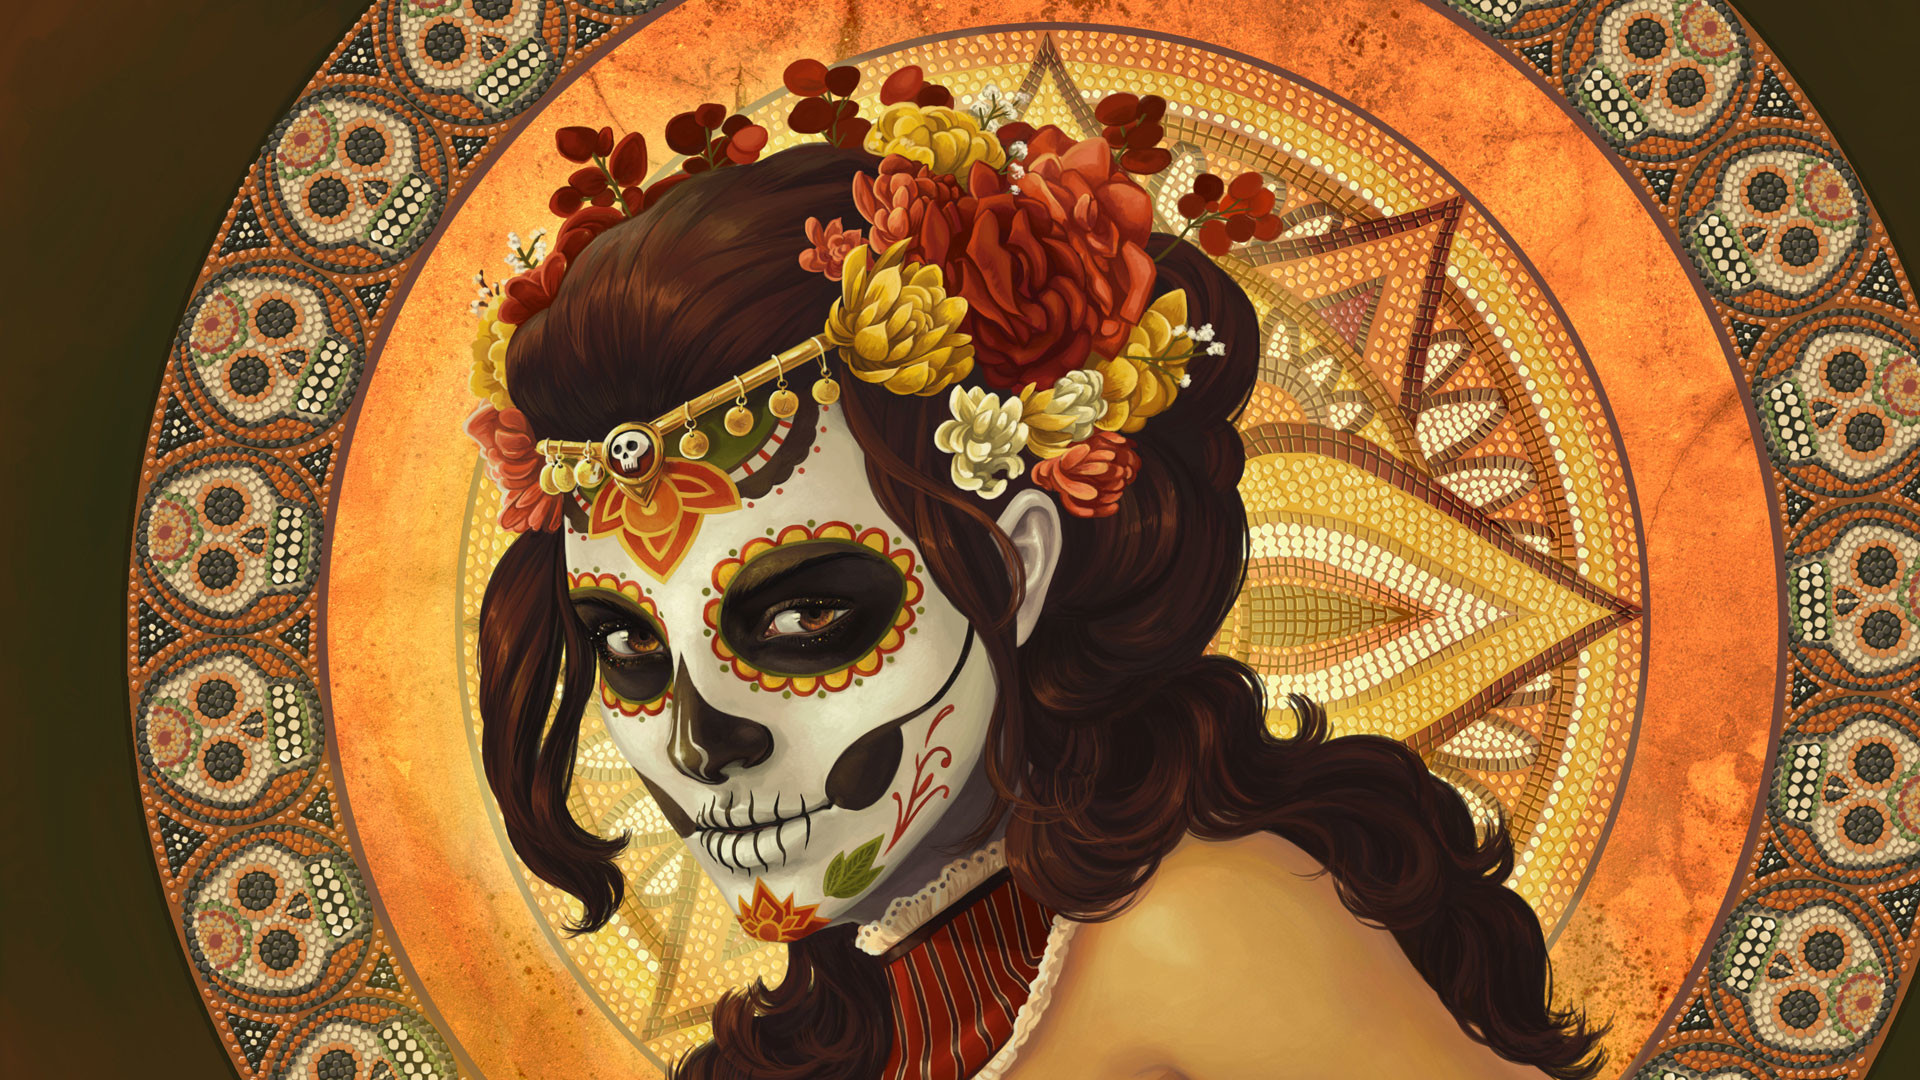 Res: 1920x1080, Day-of-the-Dead-Dia-de-los-muertos-Rockabilly-Pin-Up -girl-pink-hair-Lowbrow-Tattoo-art-PRINT-pink-su-wallpaper-wpt7203835